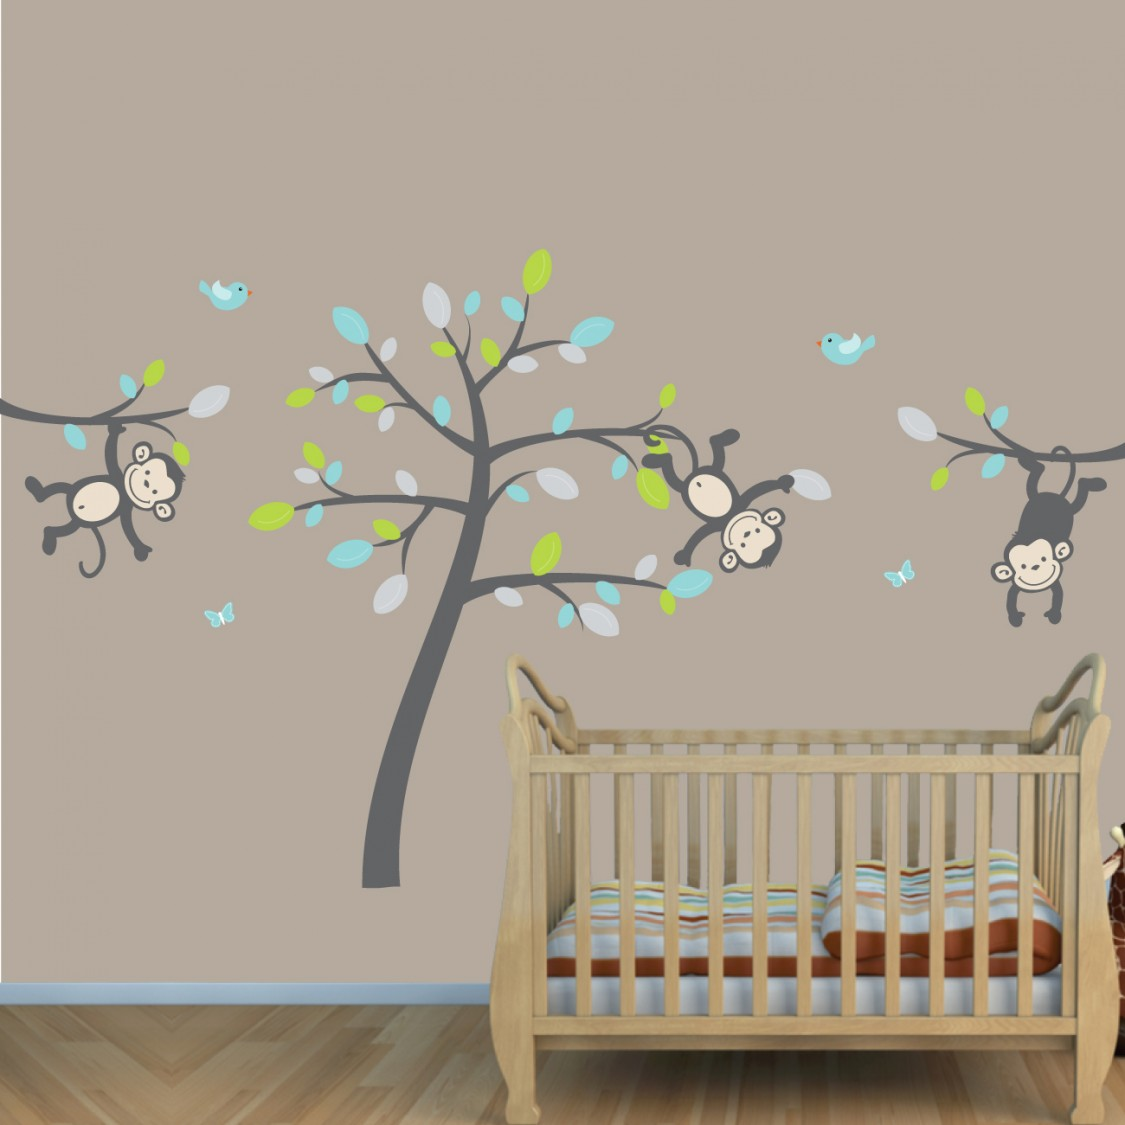 Wonderful Nursery Decals And More